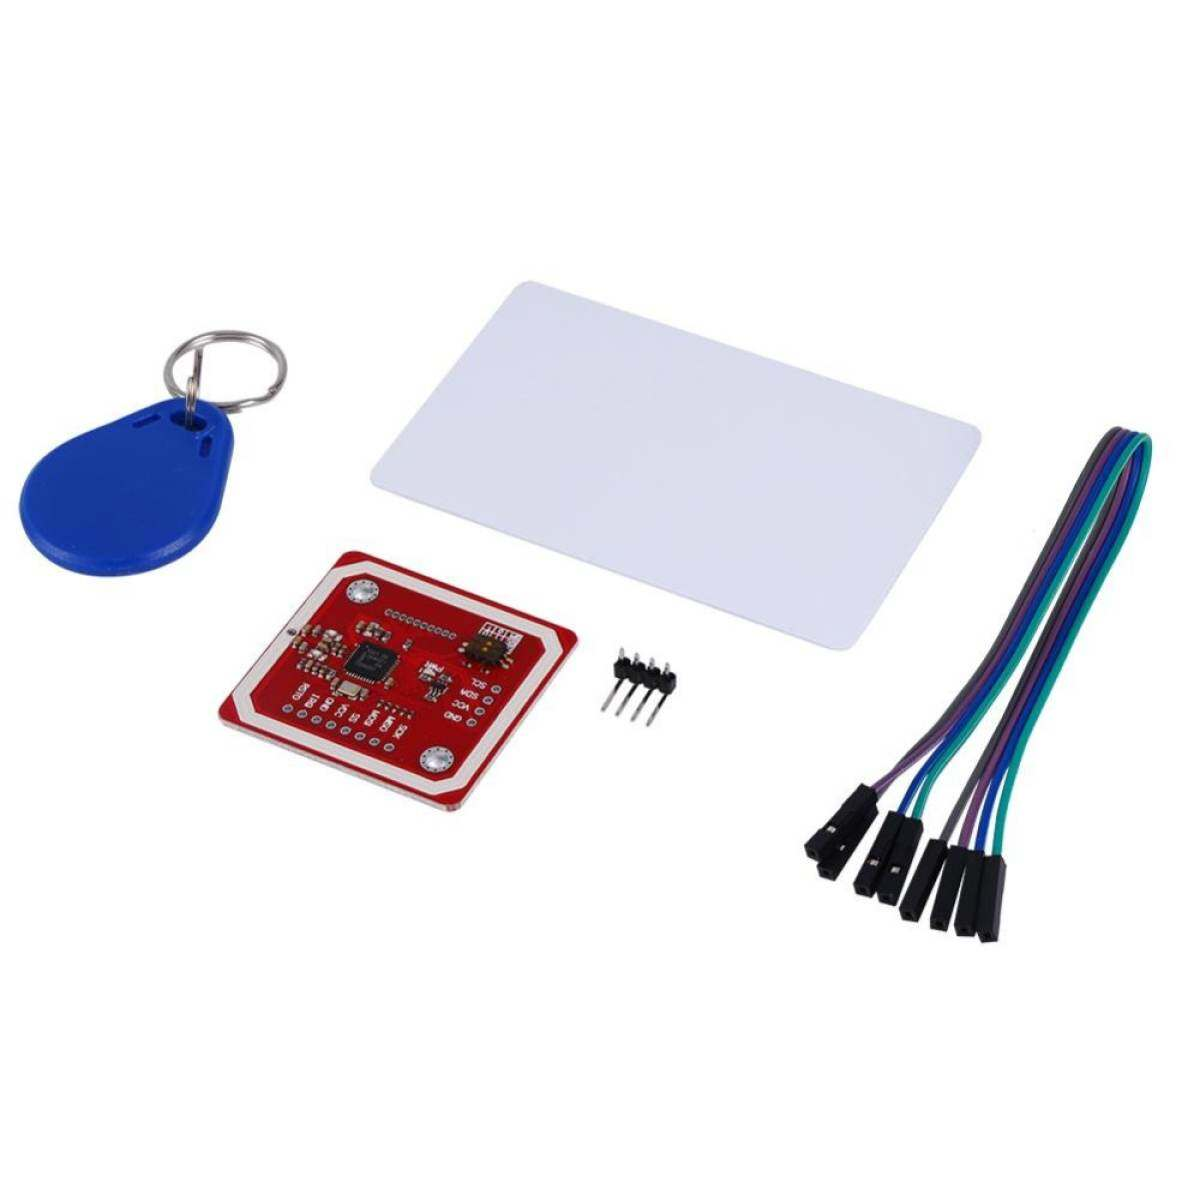 Sell pn532 nfc rfid cheapest best quality   PH Store